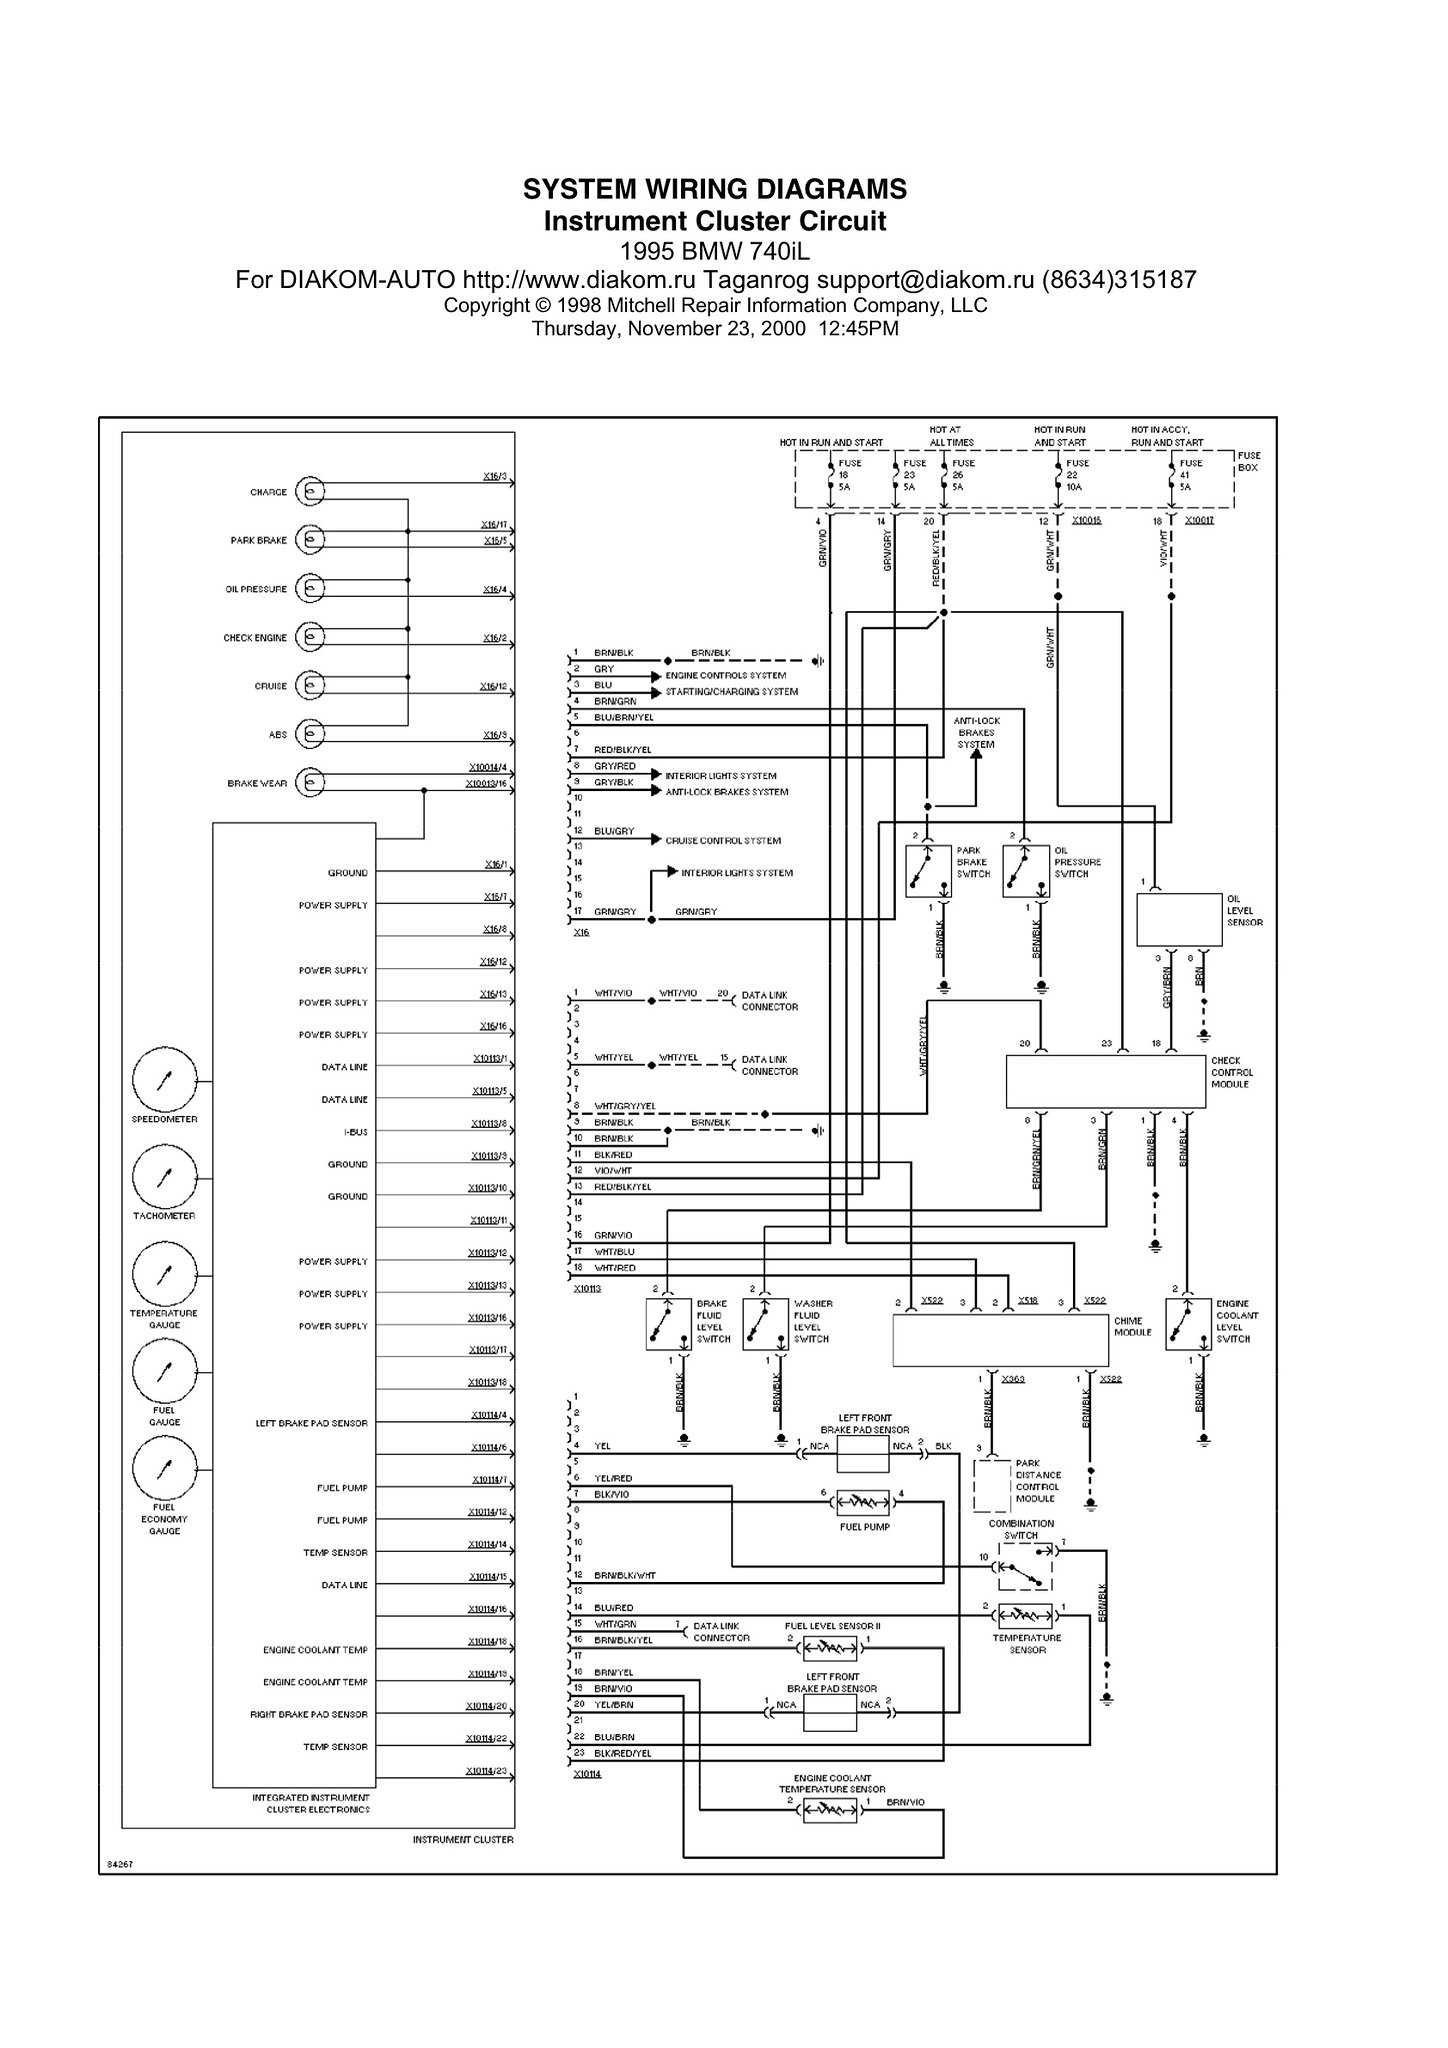 Wiring Diagram Bmw E38 Libraries Harmar Harness And Pigtail For Scooter E39 Trusted Online2002 Captain Source Of